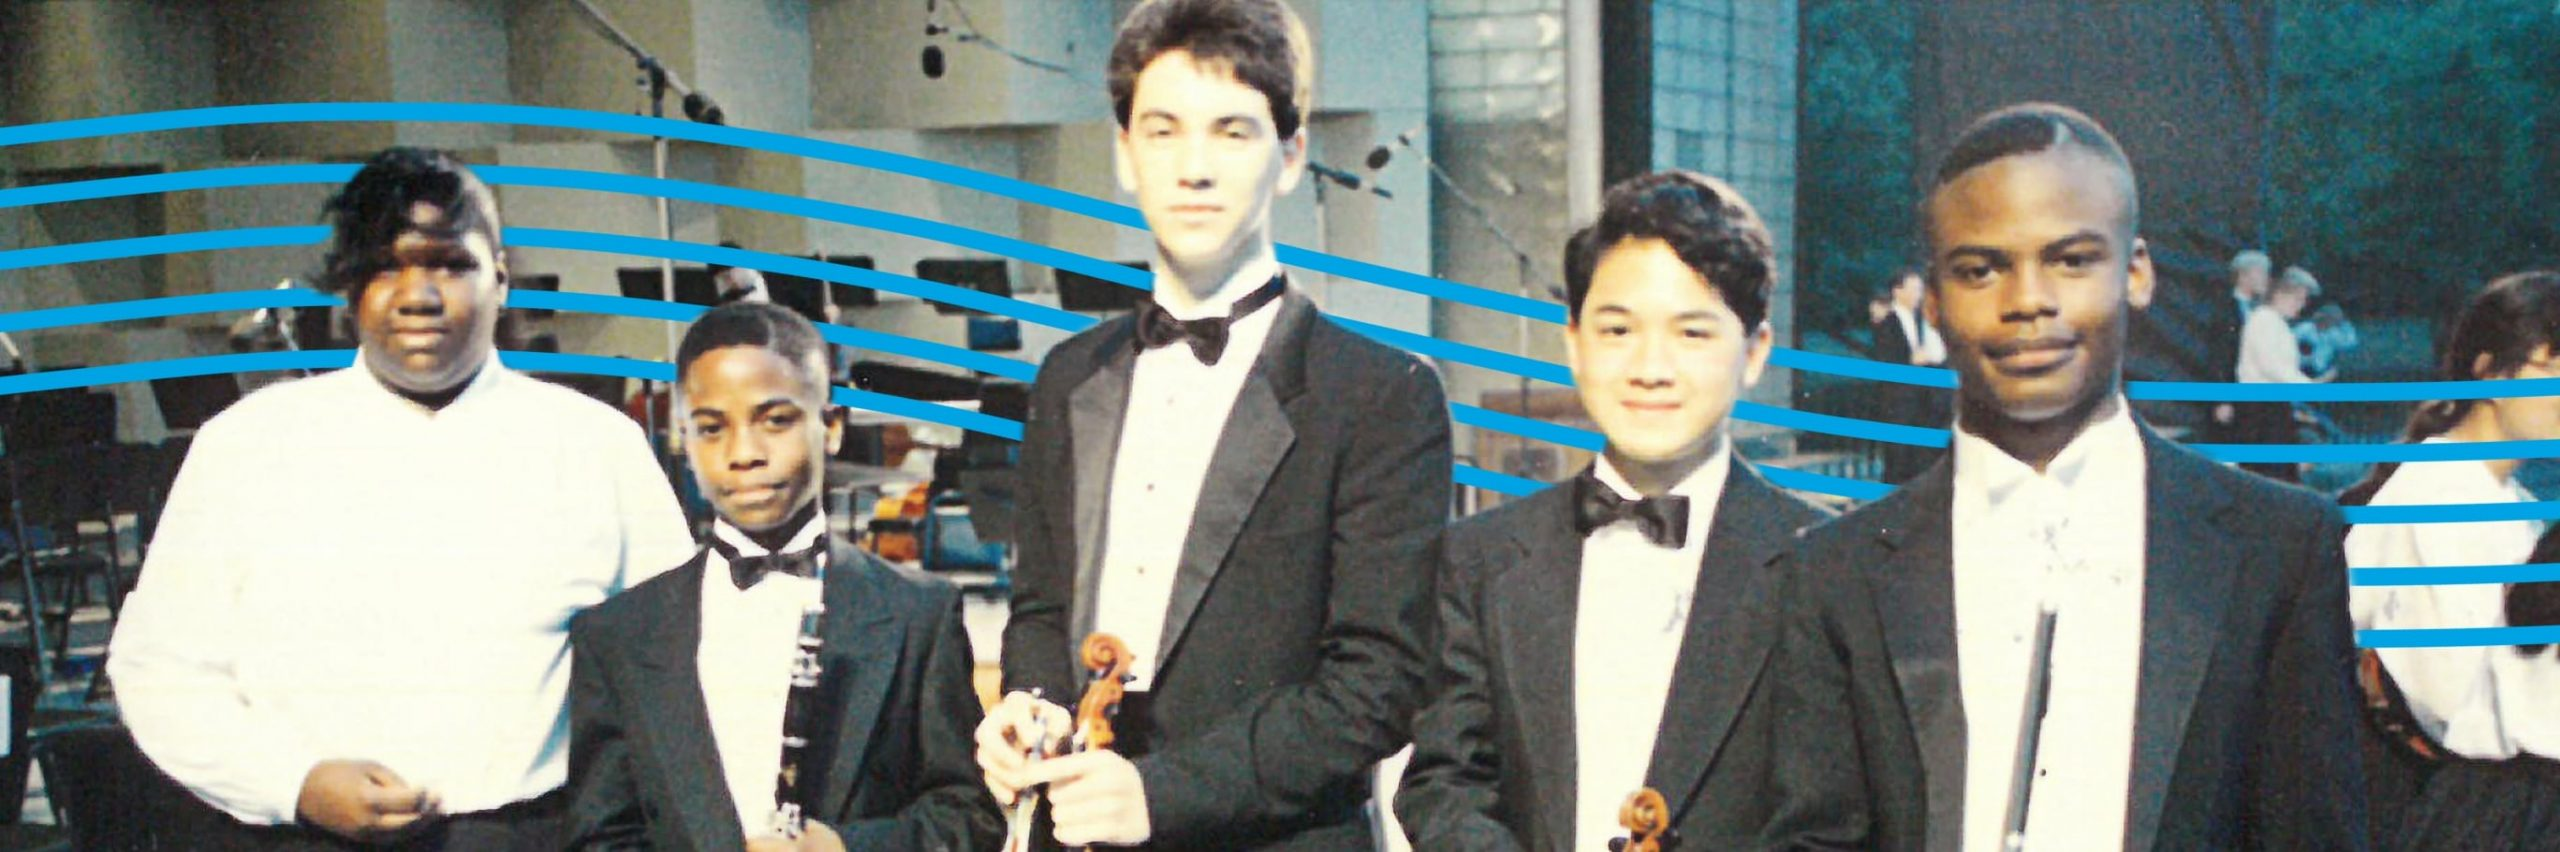 Five teenage musicians, dressed formally for a concert, holding their instruments